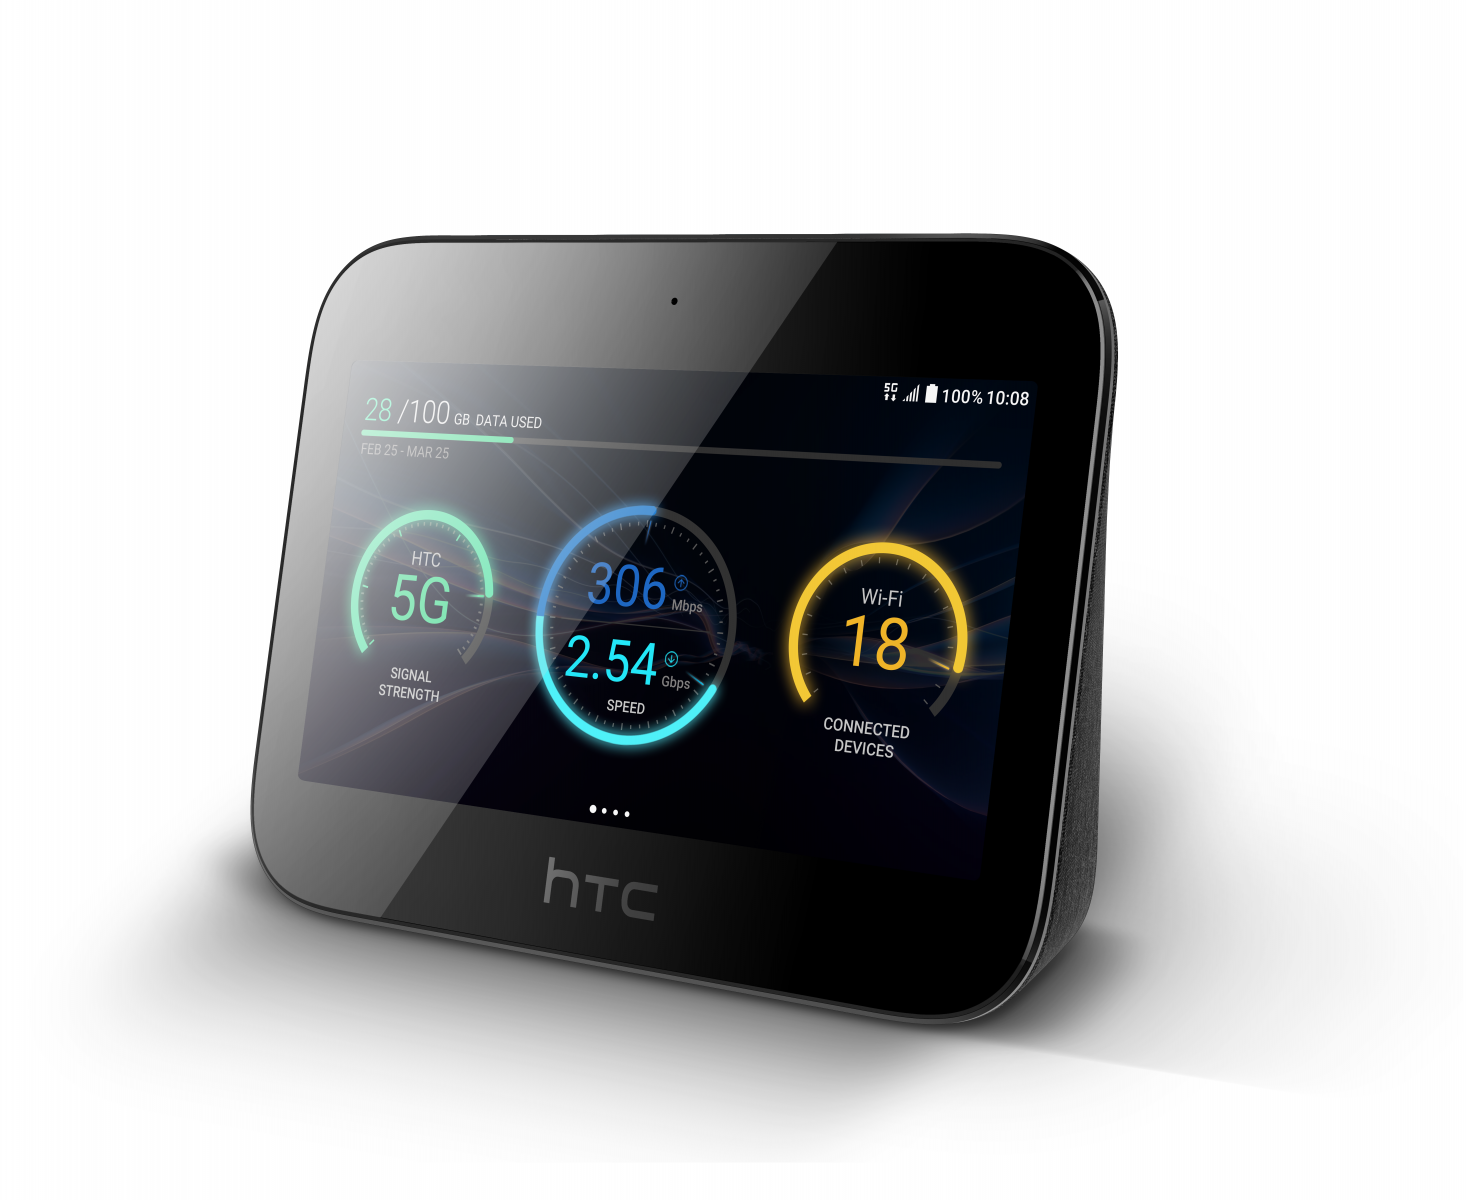 Image provided by HTC with theoretical product speeds